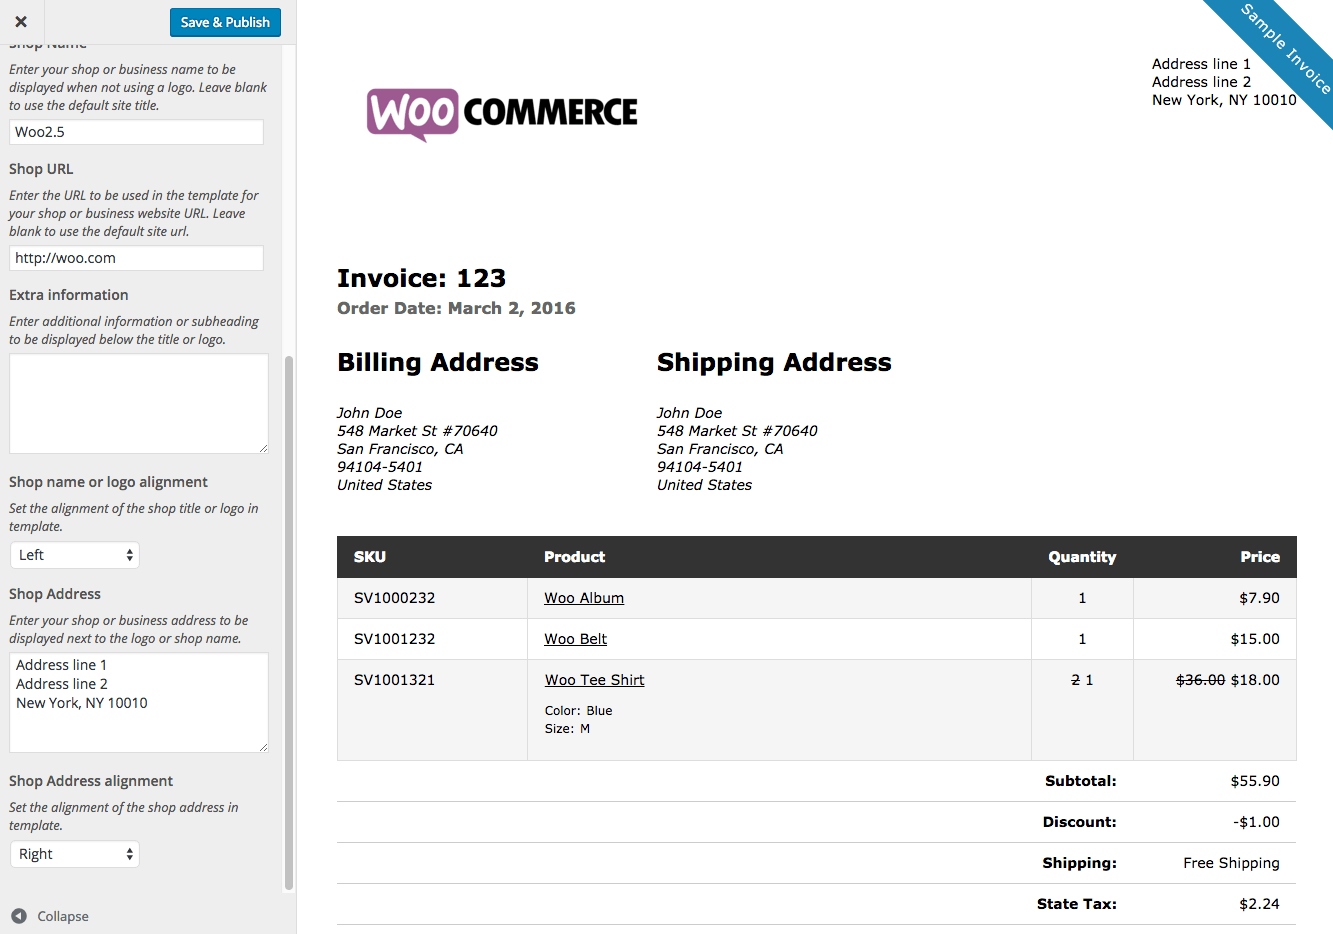 Ebitus  Unique Woocommerce Print Invoices Amp Packing Lists  Woocommerce Docs With Goodlooking Woocommerce Print Invoices  Packing Lists Customizer With Cute Non Negotiable Warehouse Receipt Also Receipt For Rental Deposit In Addition A Receipt Of Payment And Upload Receipts As Well As Free Receipts Online Additionally Cash Receipt Format From Docswoocommercecom With Ebitus  Goodlooking Woocommerce Print Invoices Amp Packing Lists  Woocommerce Docs With Cute Woocommerce Print Invoices  Packing Lists Customizer And Unique Non Negotiable Warehouse Receipt Also Receipt For Rental Deposit In Addition A Receipt Of Payment From Docswoocommercecom